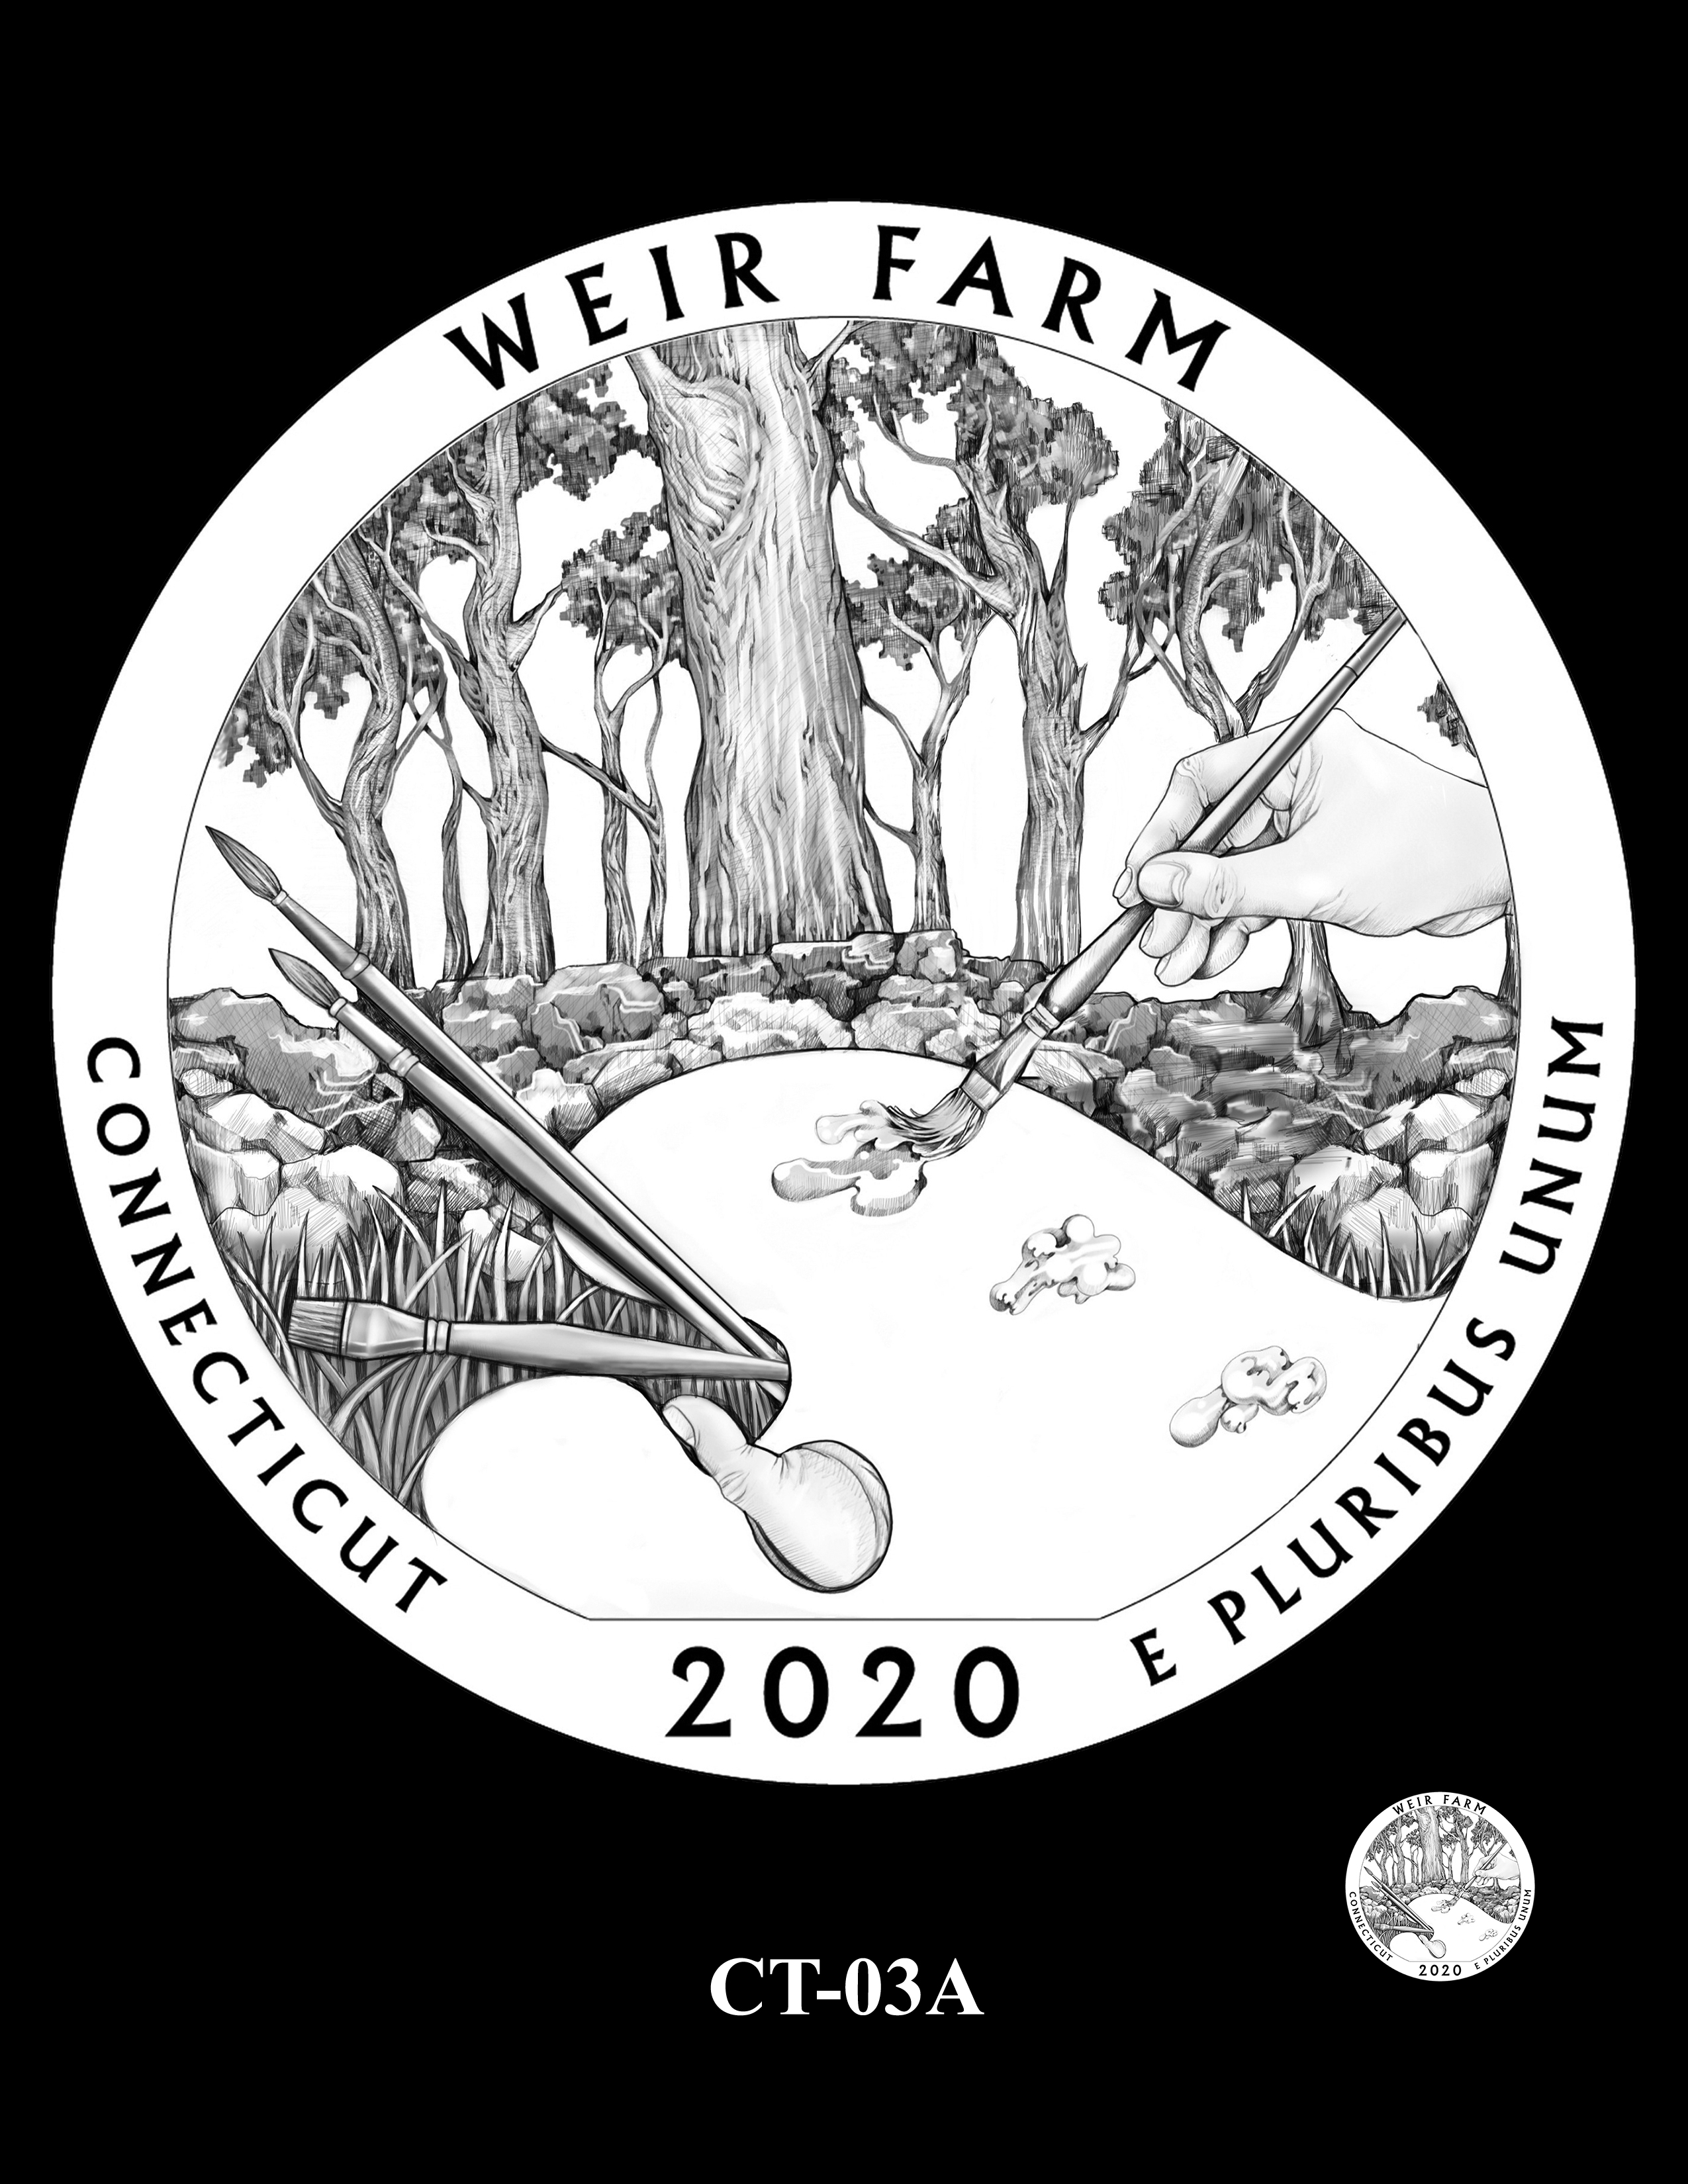 CT-03A -- 2020 America the Beautiful Quarters® Program